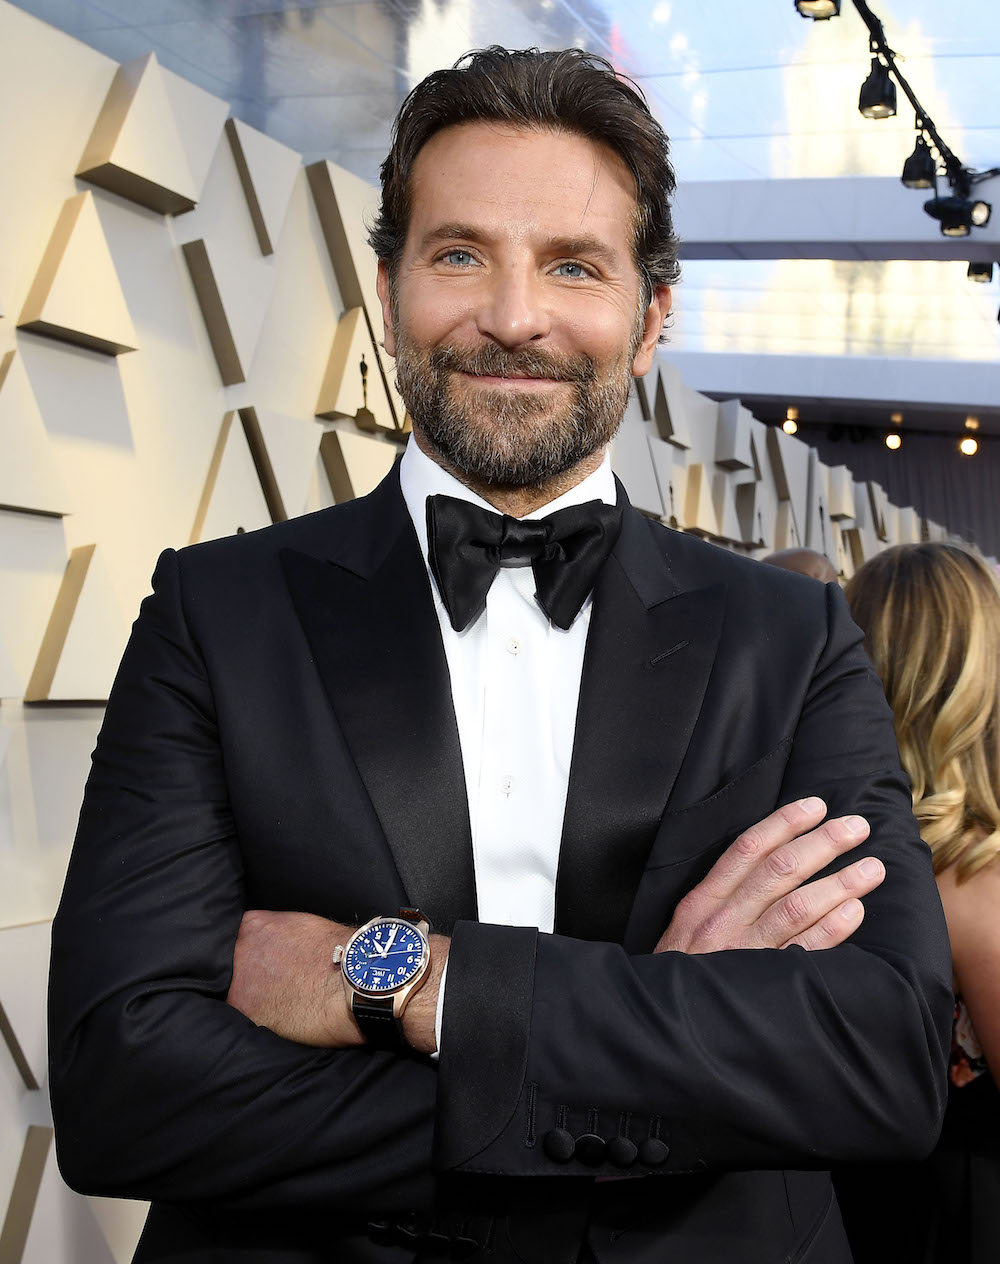 HOLLYWOOD, CALIFORNIA - FEBRUARY Bradley Cooper attends the 91st Annual Academy Awards